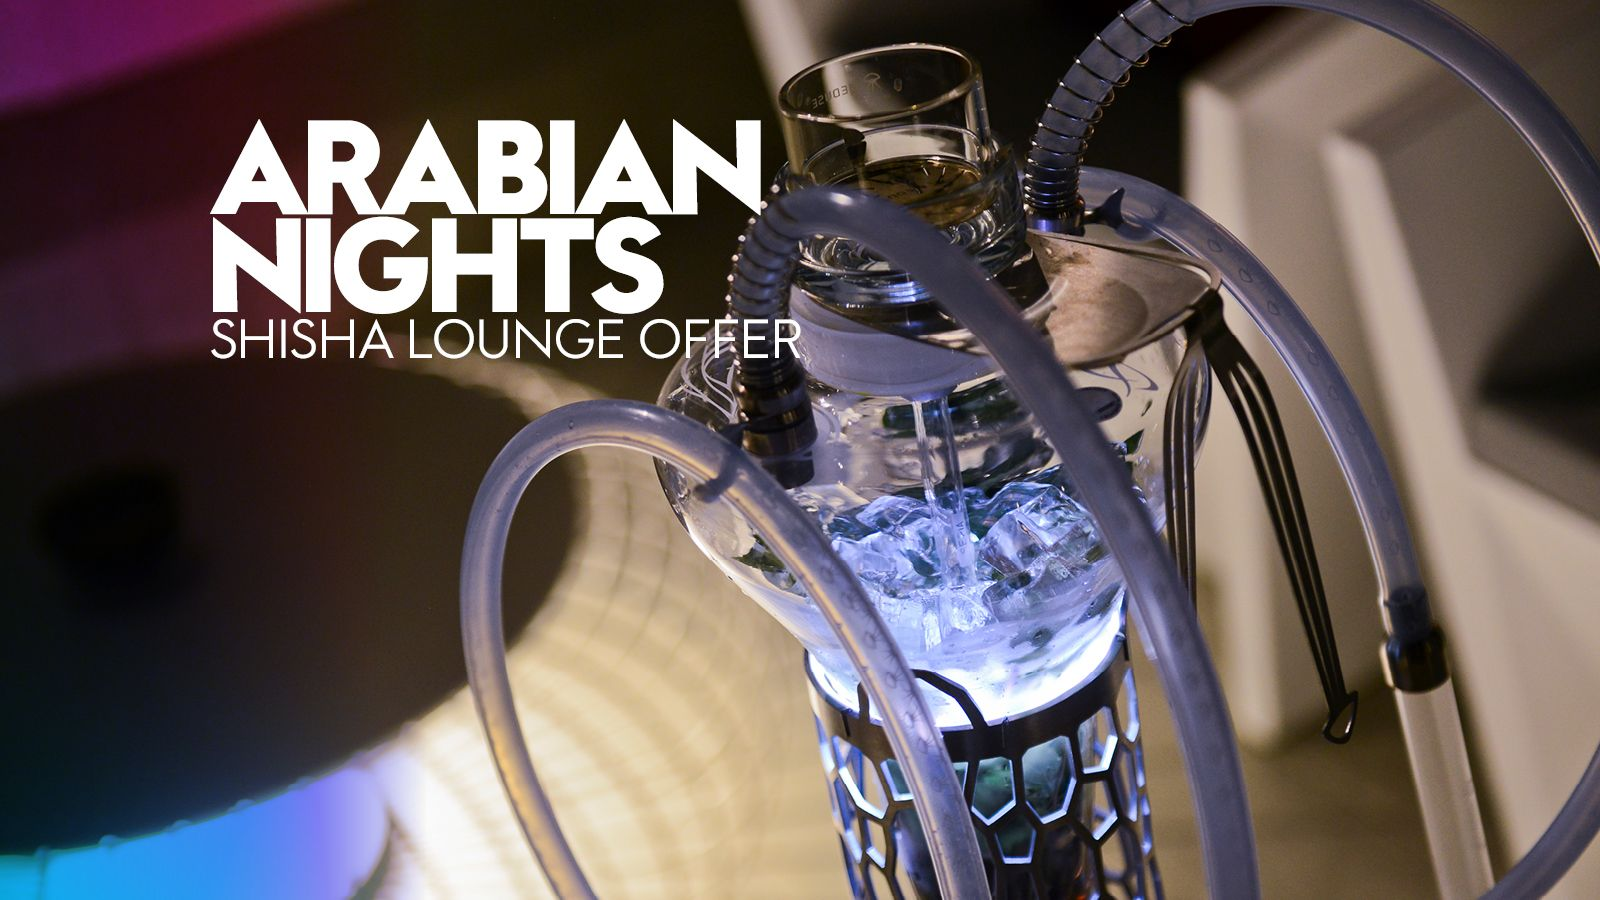 Arabian Nights Shisha Lounge Offer